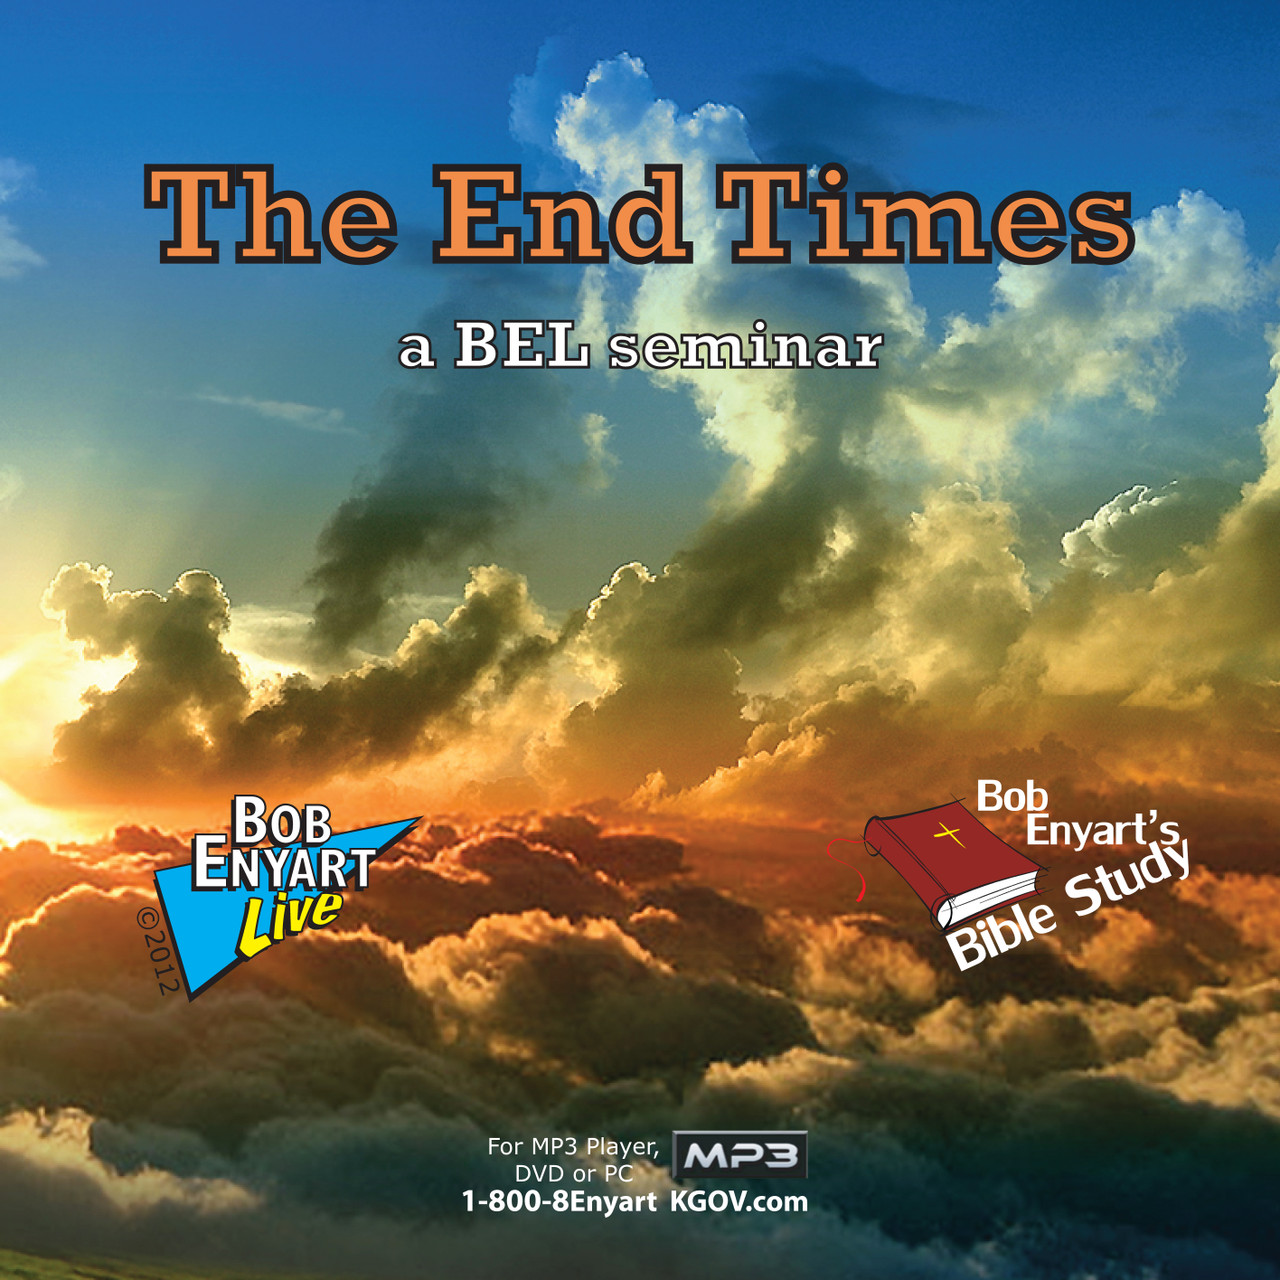 Bob Enyart's End Times seminar delivered four days after 9/11